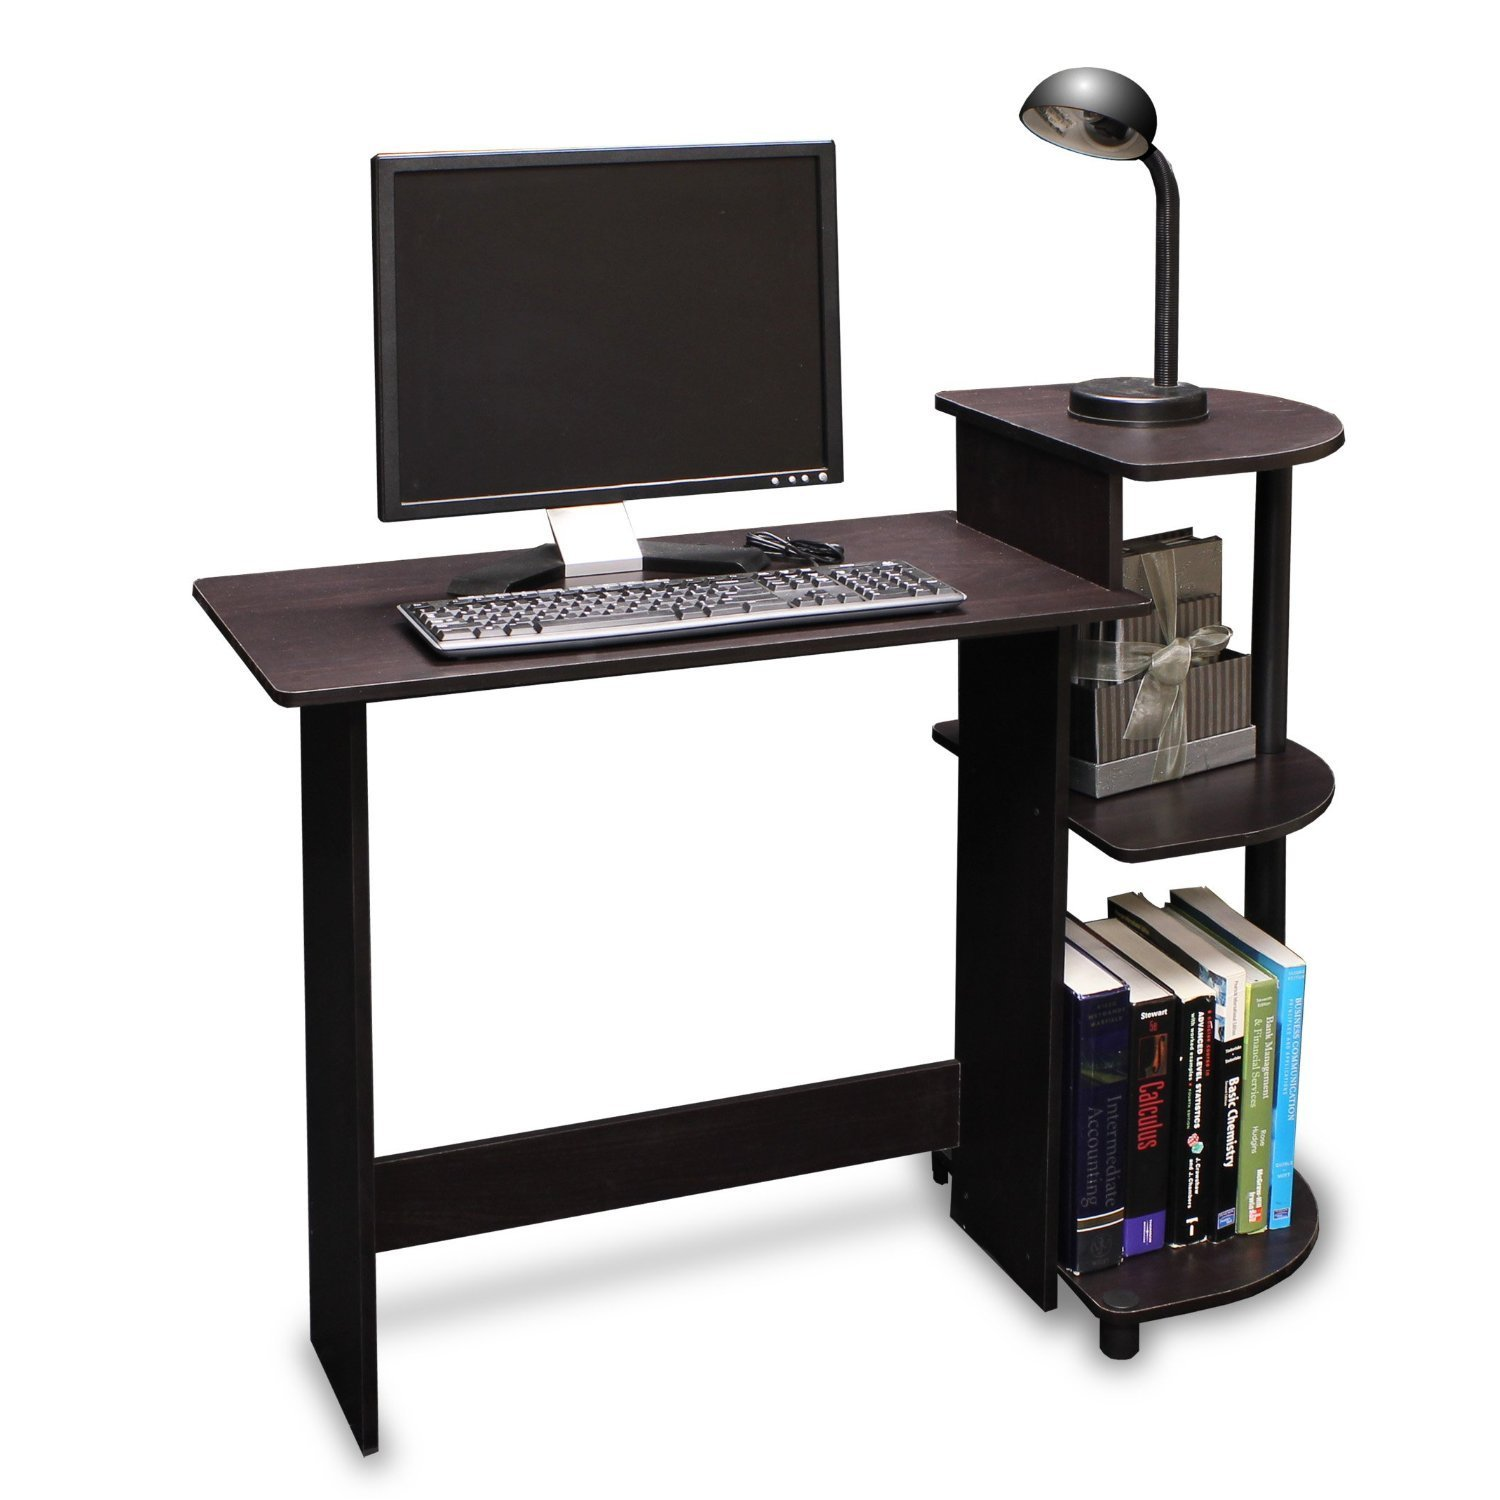 Space saving home office ideas with ikea desks for small spaces homesfeed - Furniture for small spaces uk model ...